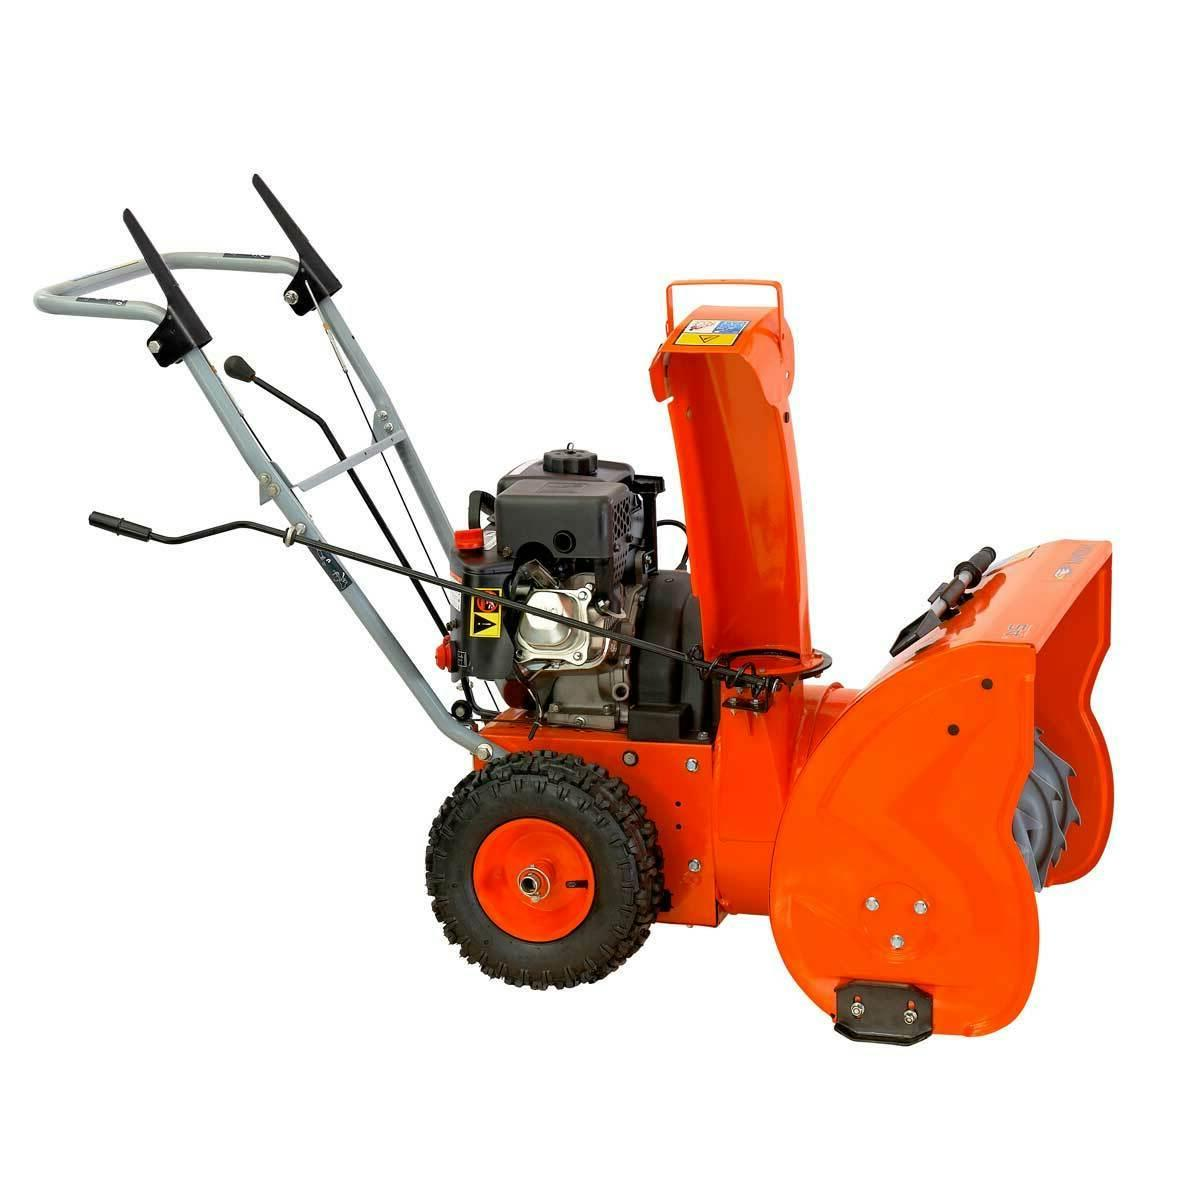 yb6270 two stage snow blower